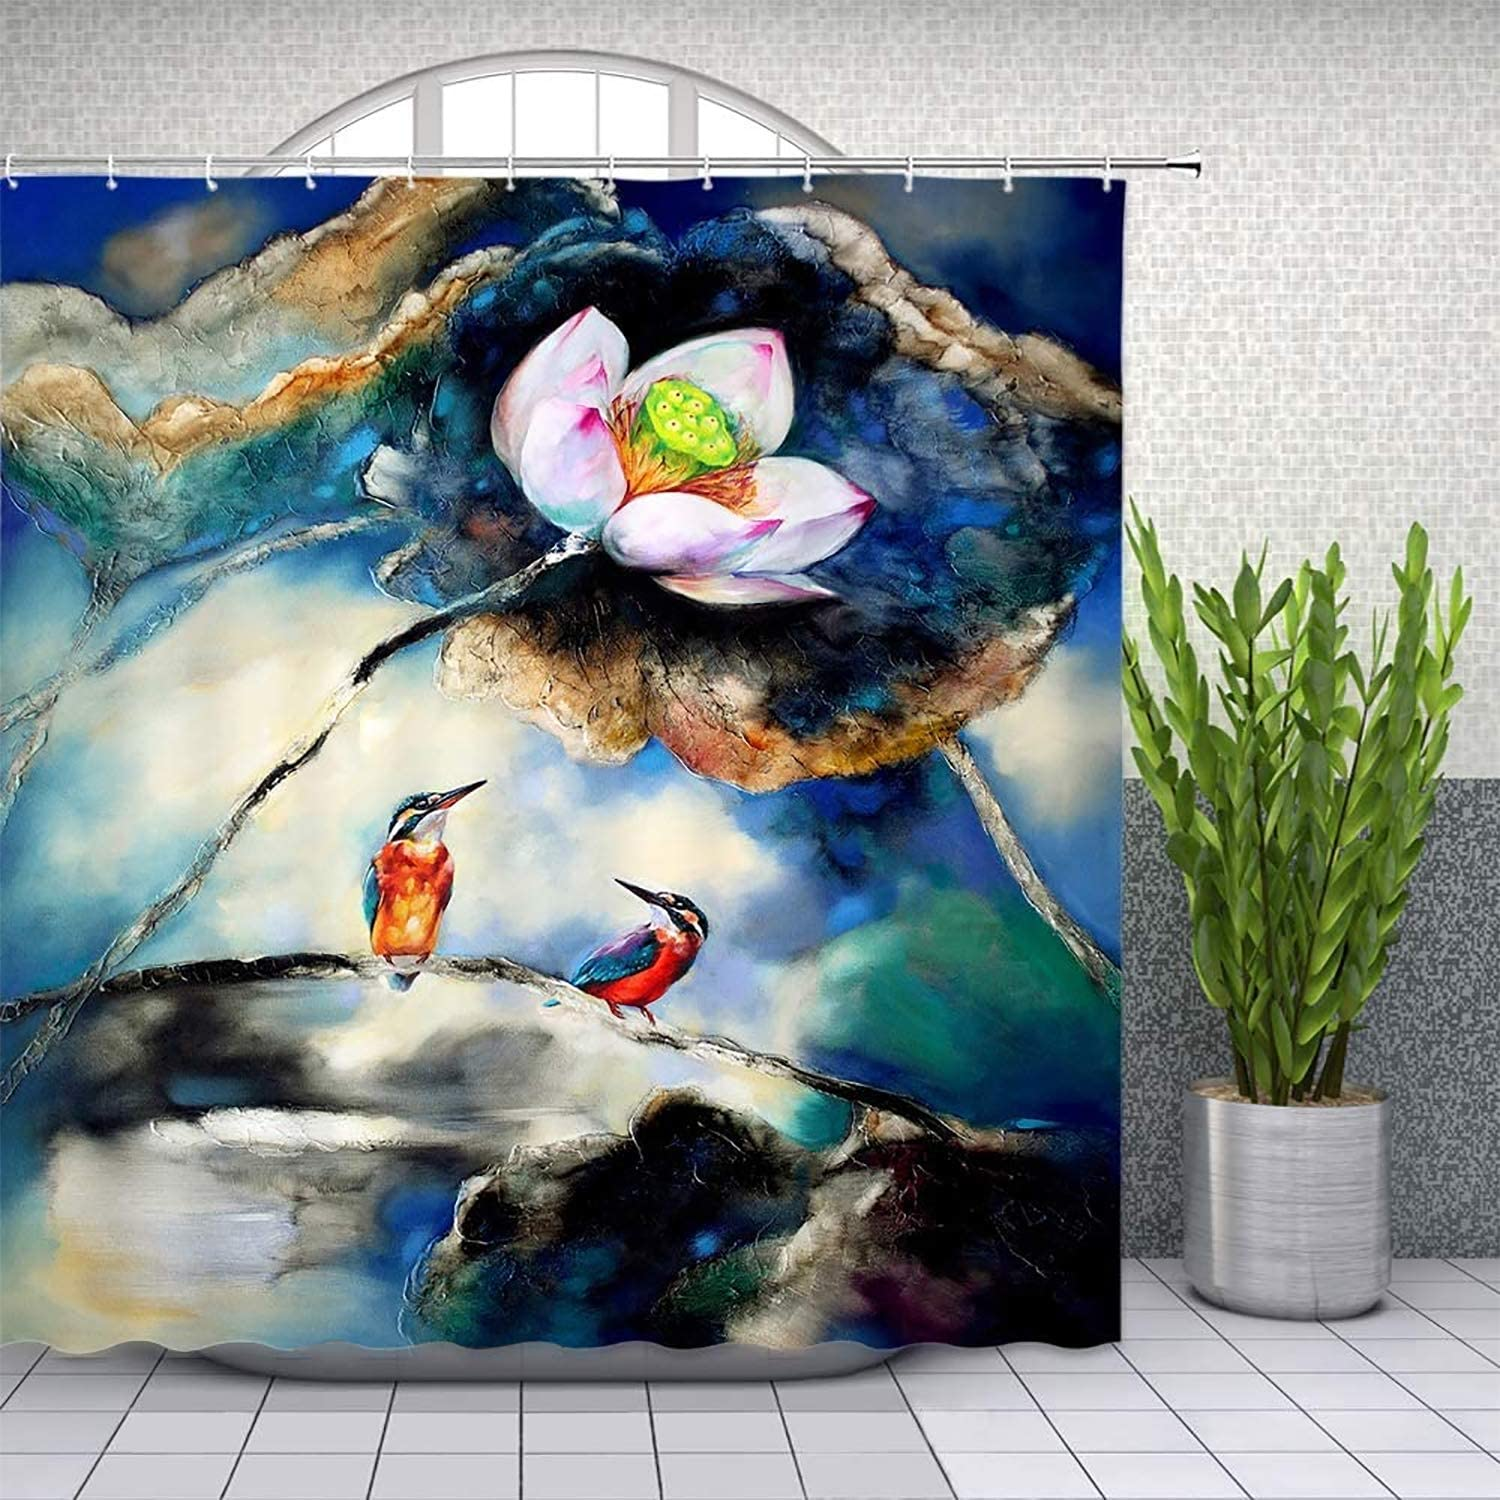 BBSET Watercolor Lotus and Bird Shower Curtain Spring Botanical Garden Flower Nature Theme Waterproof Cloth Bathroom Curtain Set with Hooks 72x72 Inches